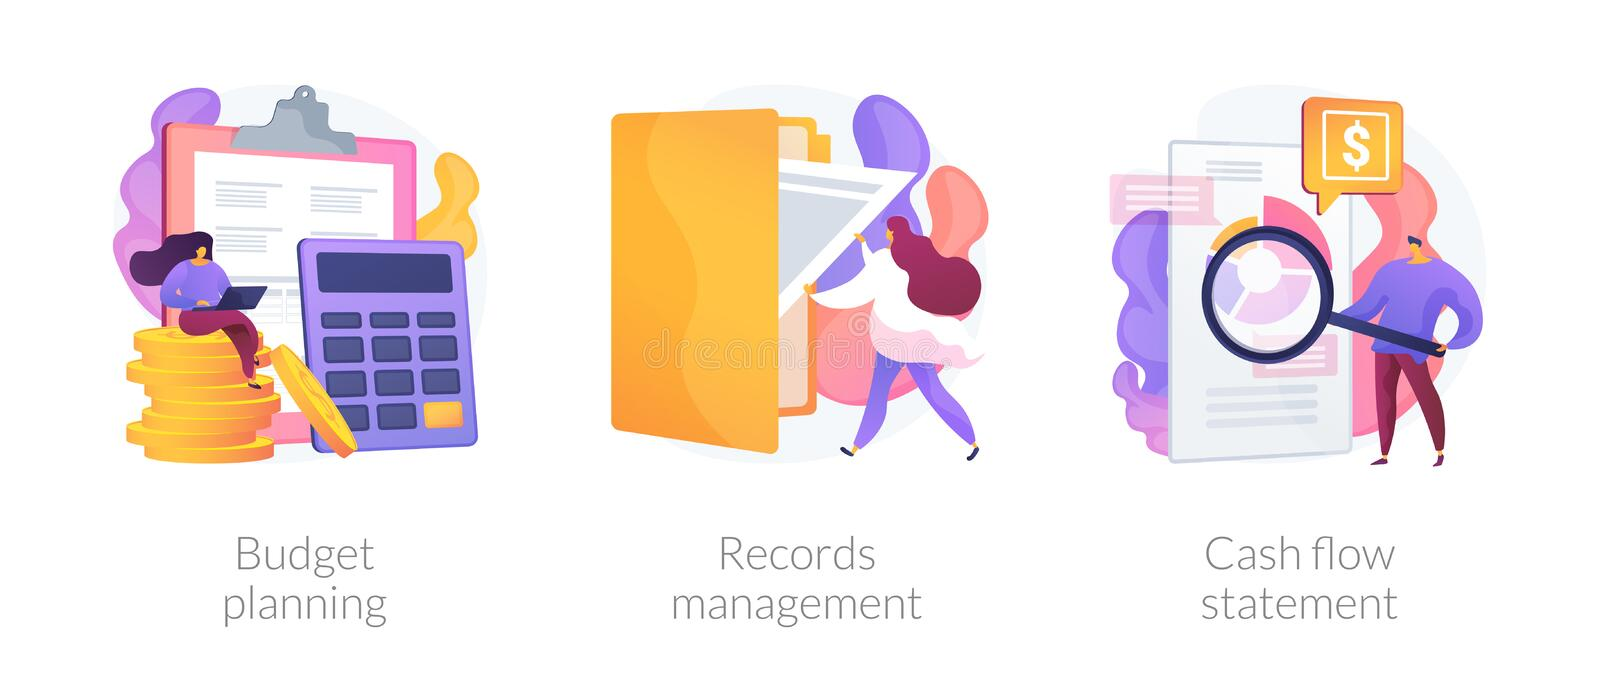 Personal expenses management vector concept metaphors. Money savings estimation, files organization system, financial report icons set. Budget planning, records royalty free illustration